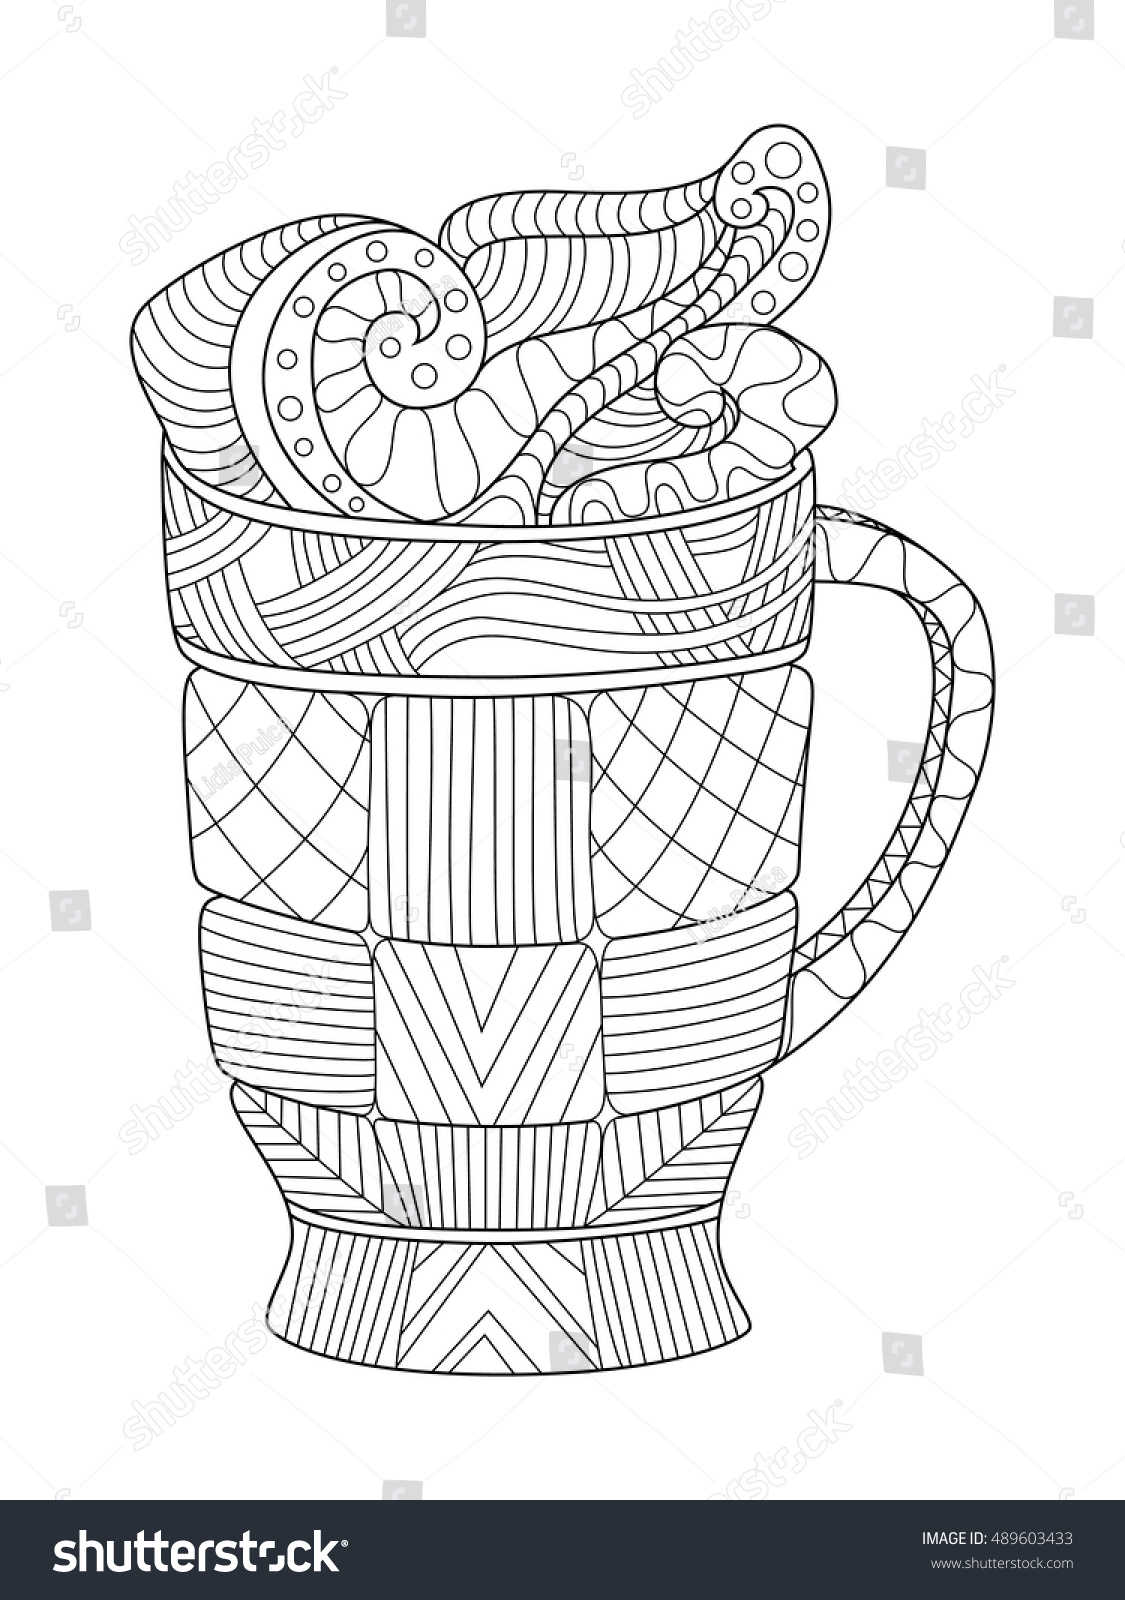 Pint Of Beer Coloring Page For Adults Vector